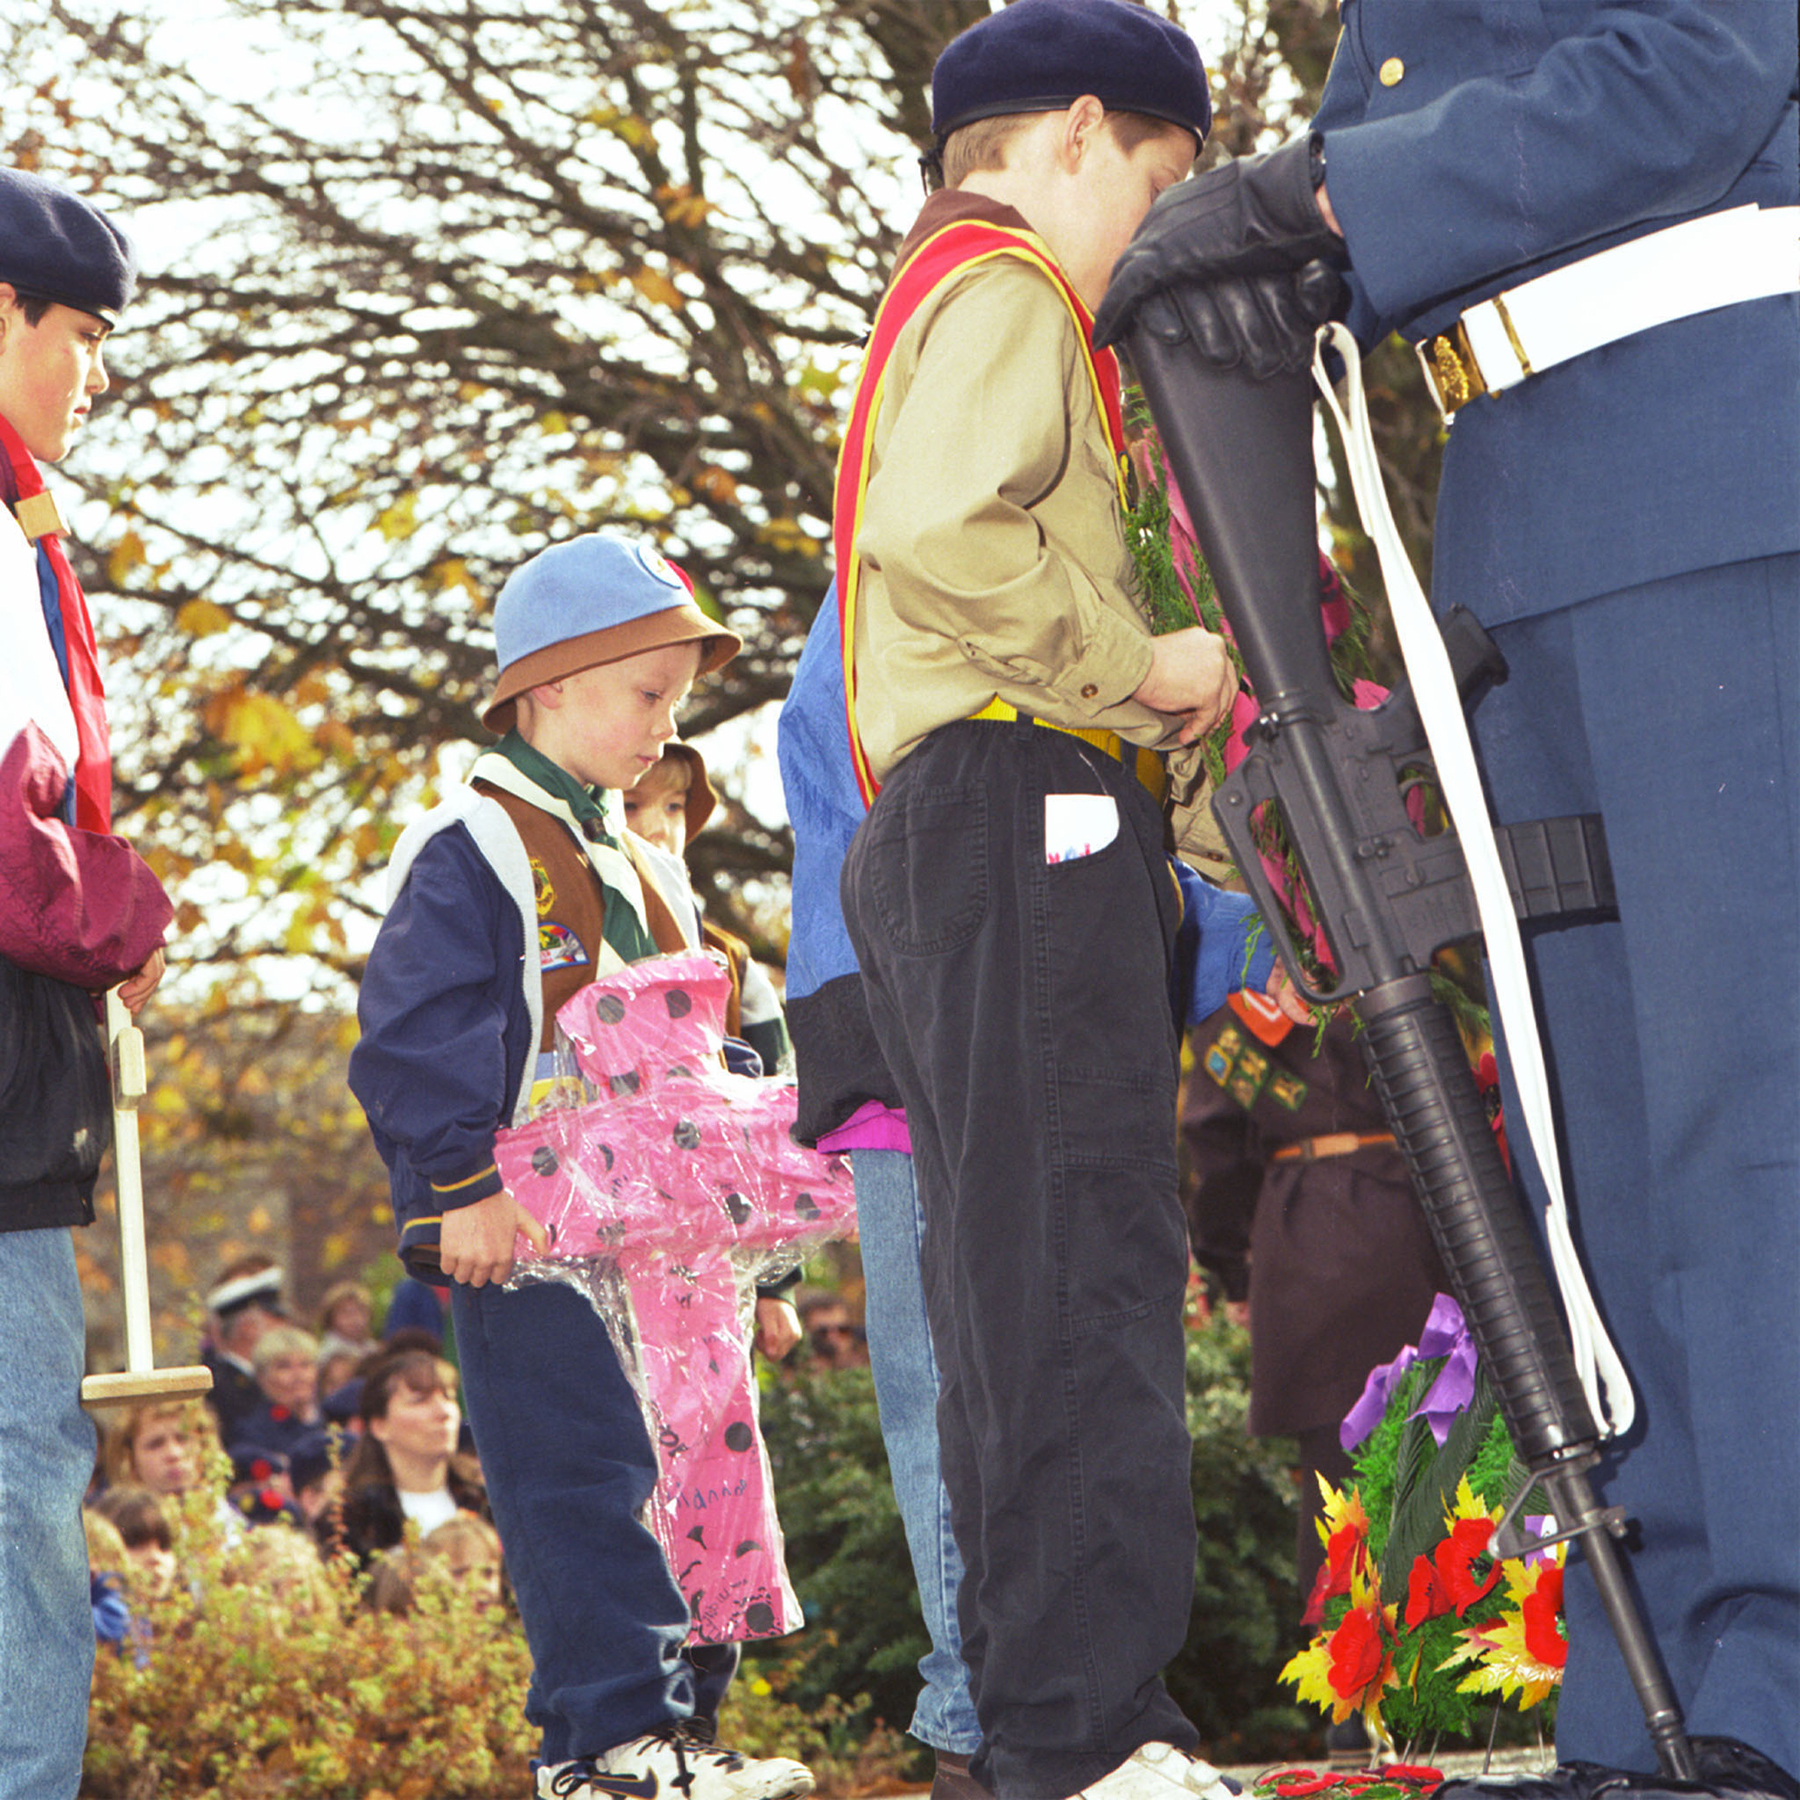 Members of a Beavers Cub Scout group lay a wreath at the cenotaph in Esquimalt, British Columbia, on Remembrance Day, November 11, 1996. PHOTO: ETC96-1411-